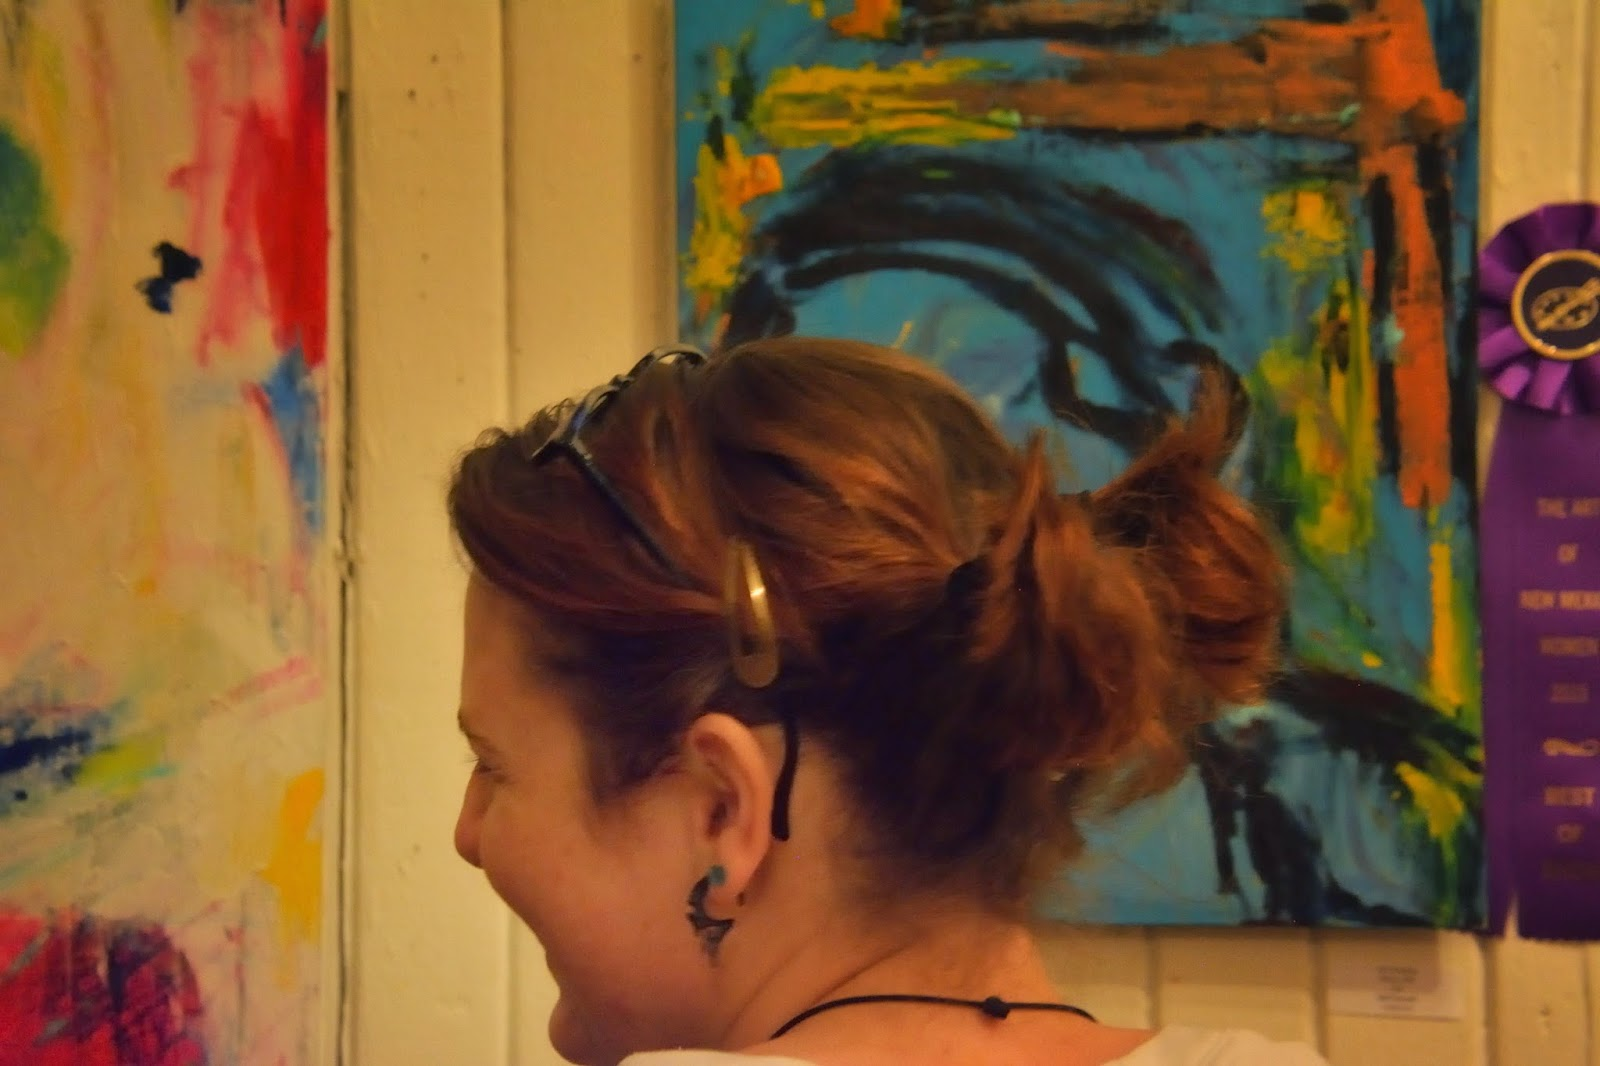 Image of young woman appreciating art March 7, 2015 in Raton, New Mexico.